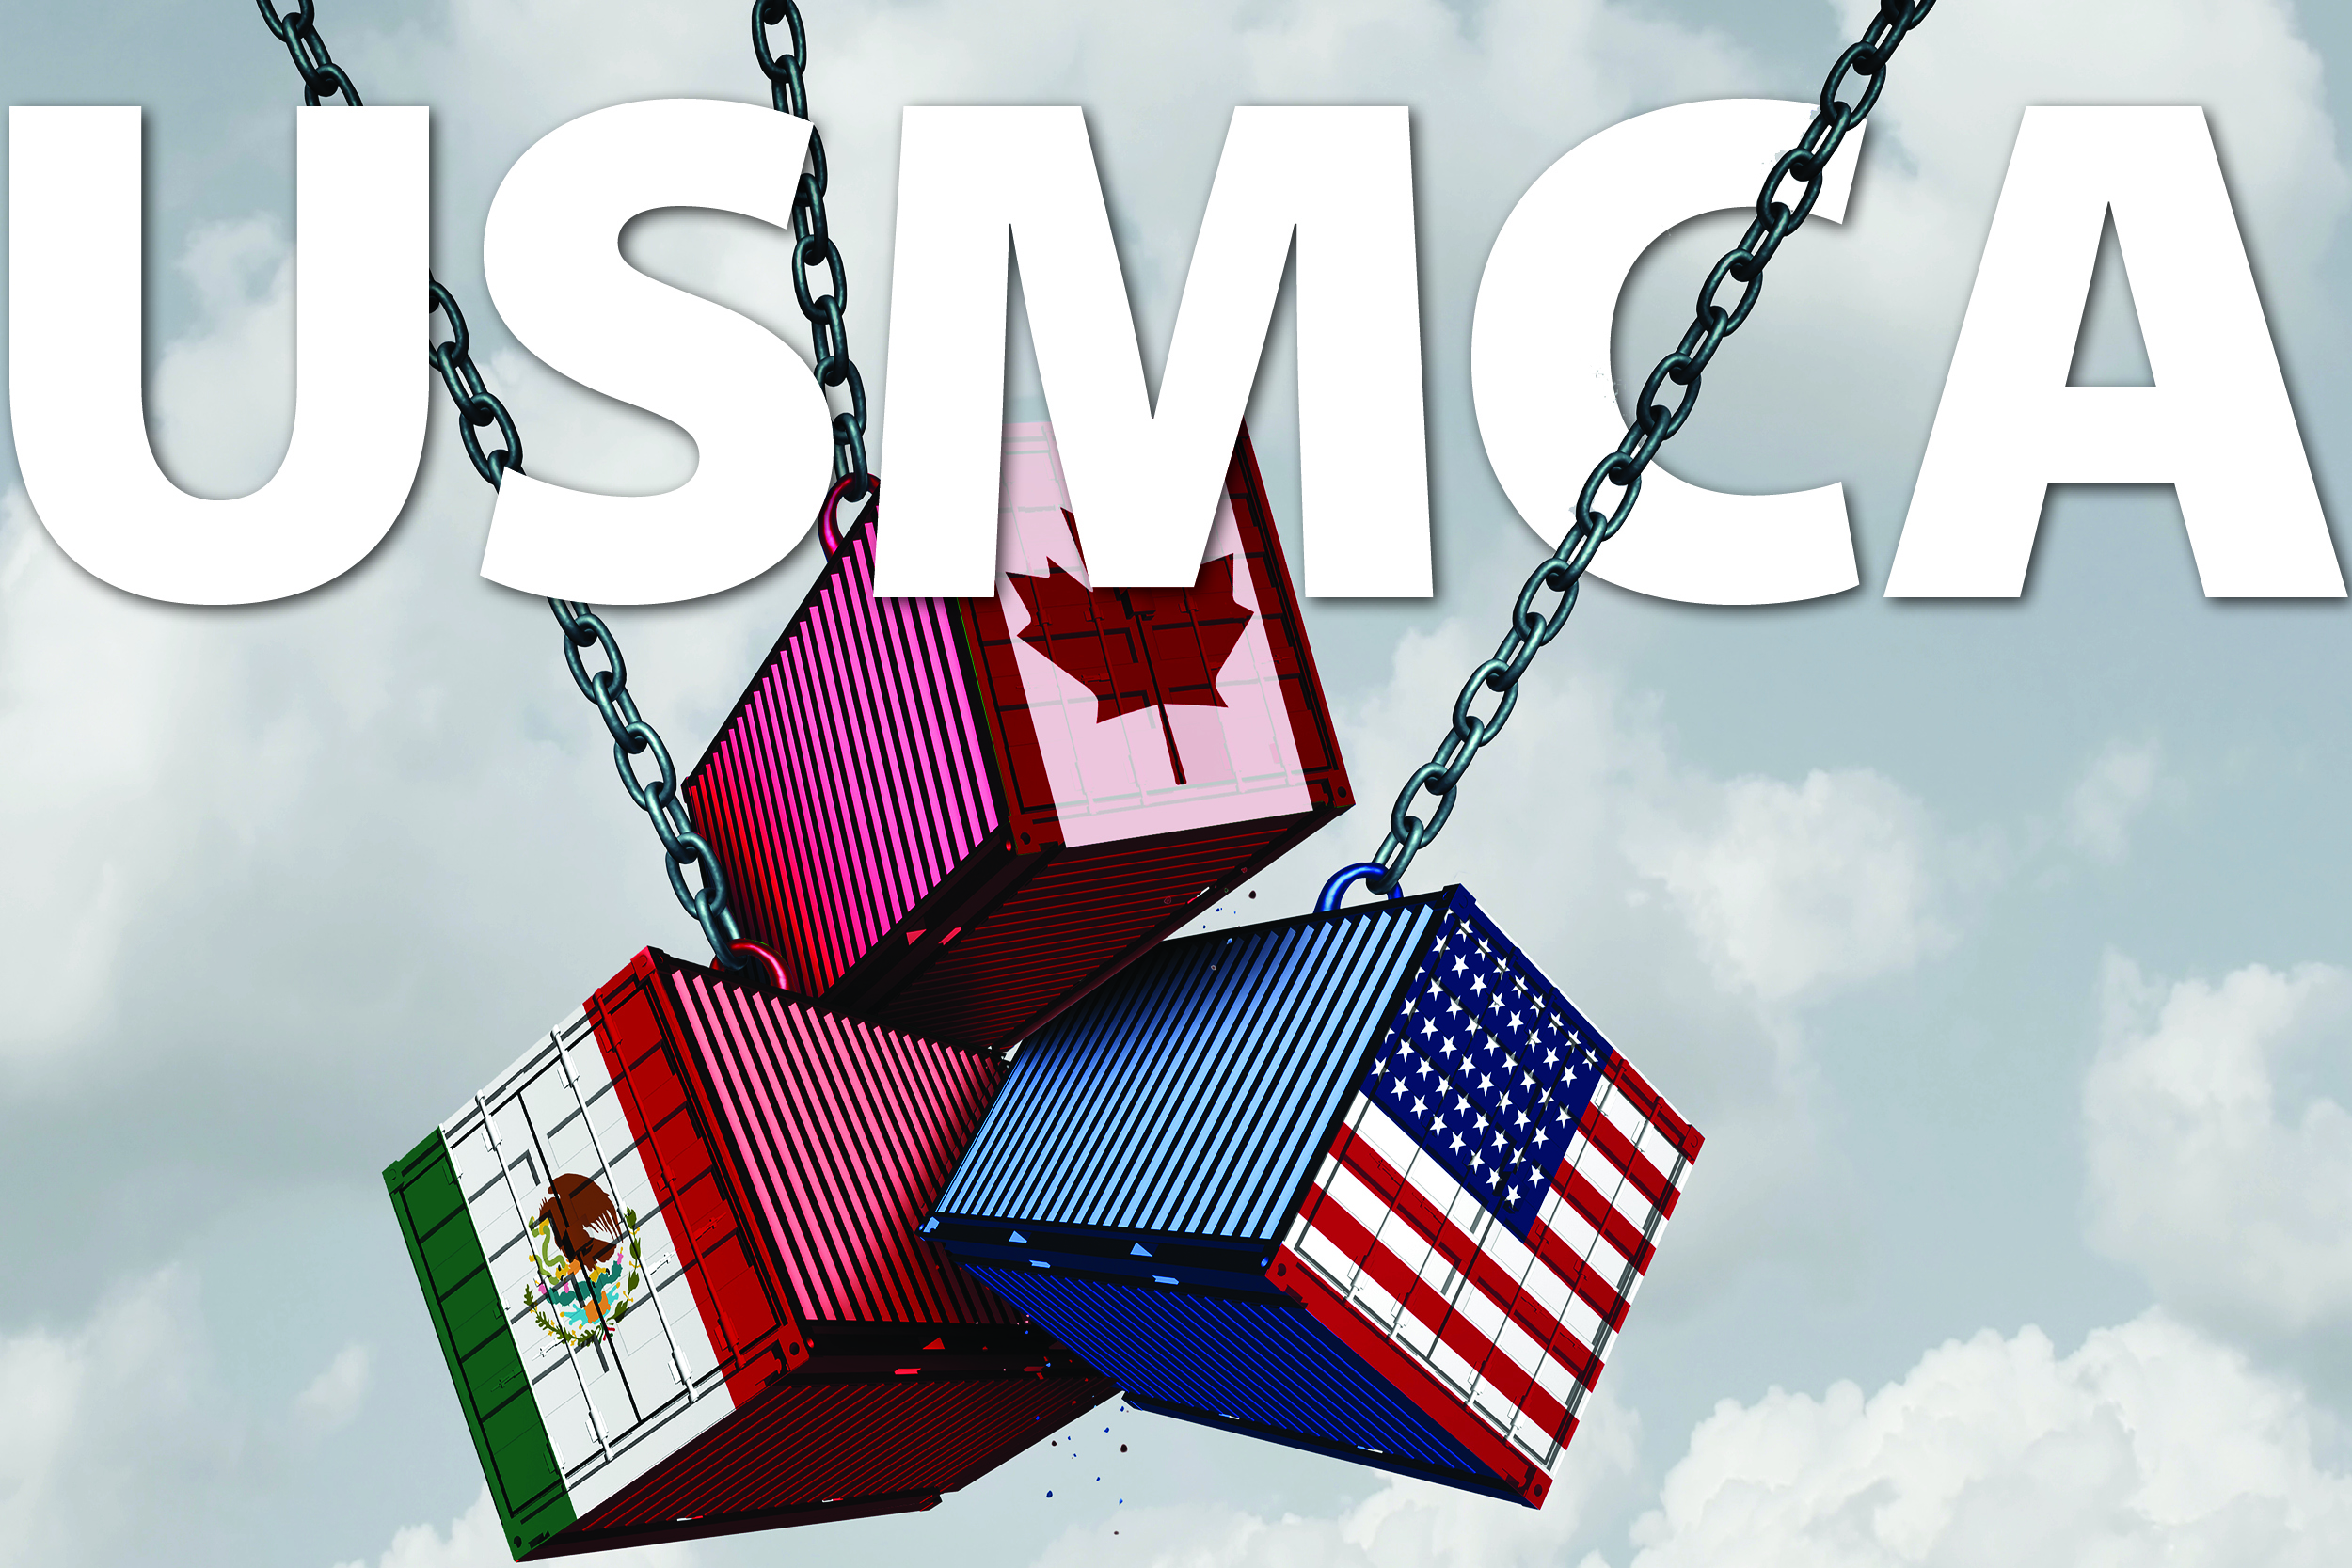 IAM Urges Congress to Reject USMCA (NAFTA 2.0)